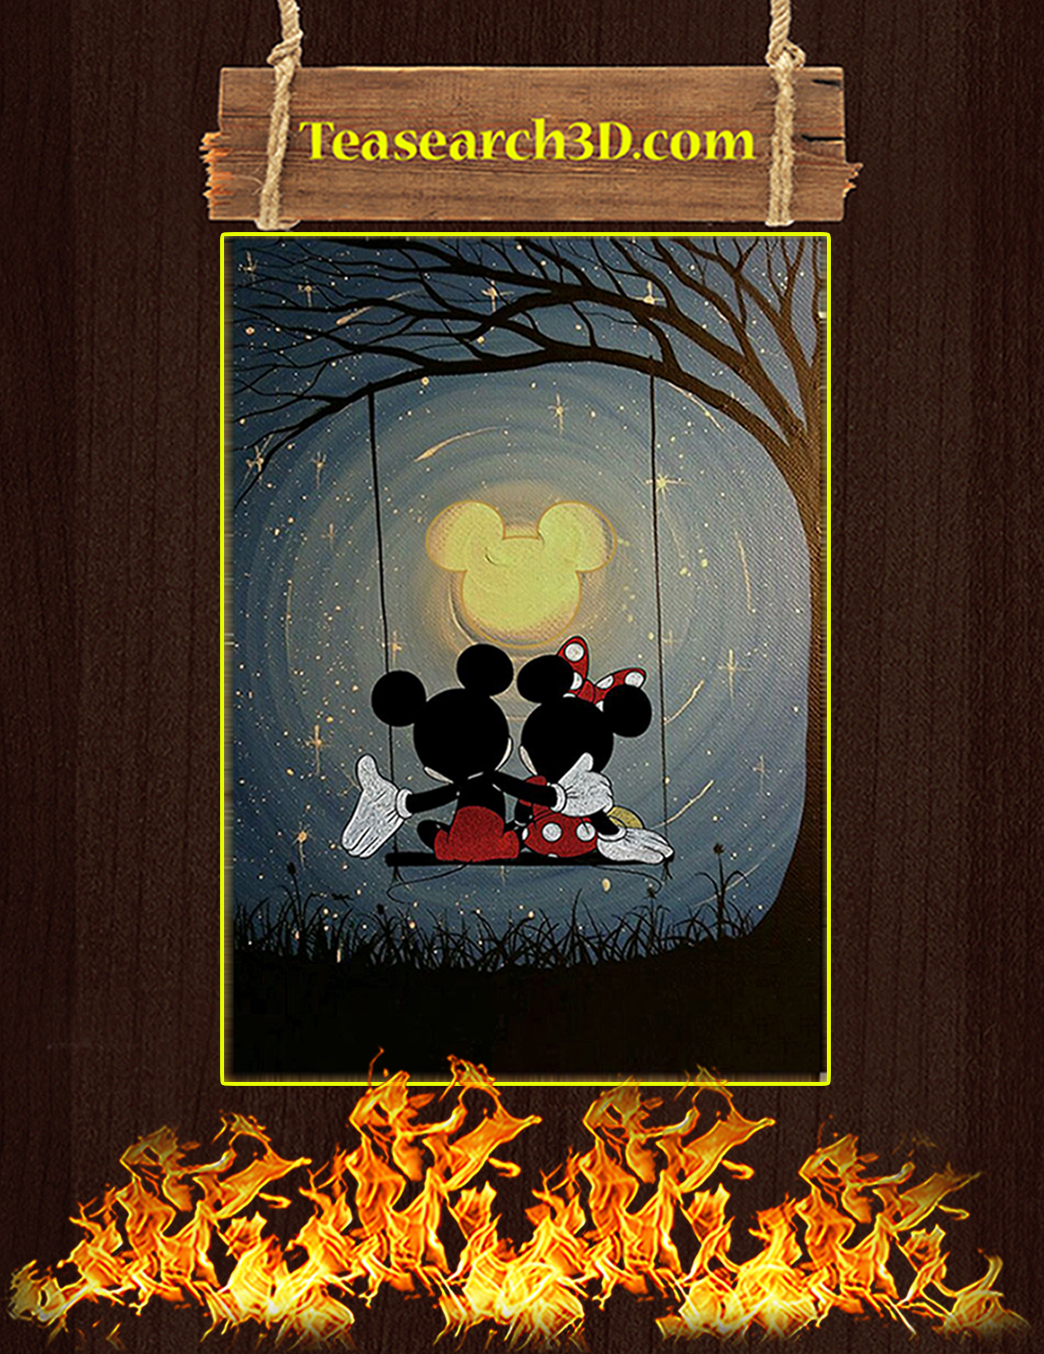 Mickey and minnie the moon poster A1